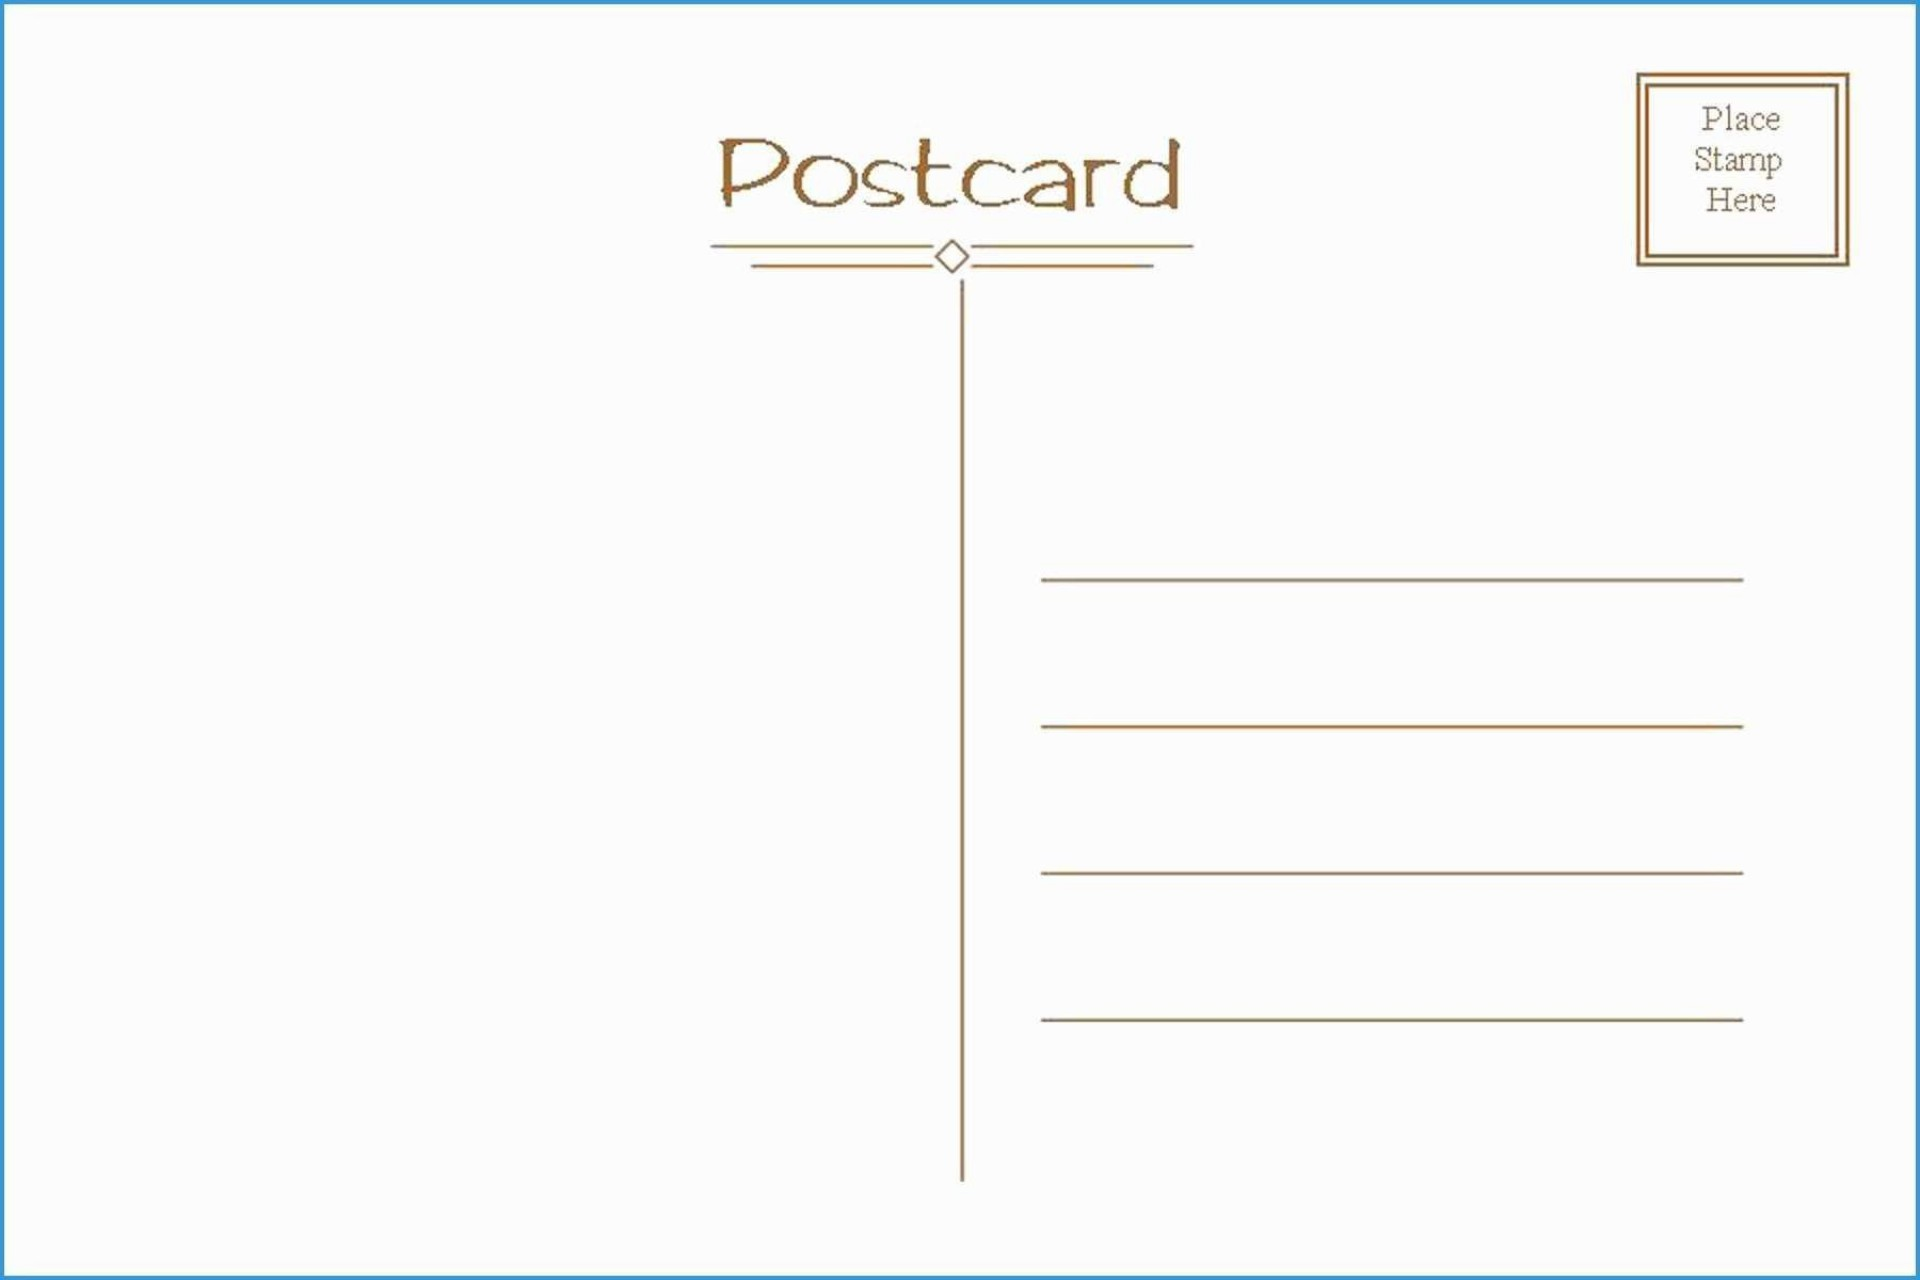 008 Impressive Postcard Front And Back Template Free High Resolution  To School1920